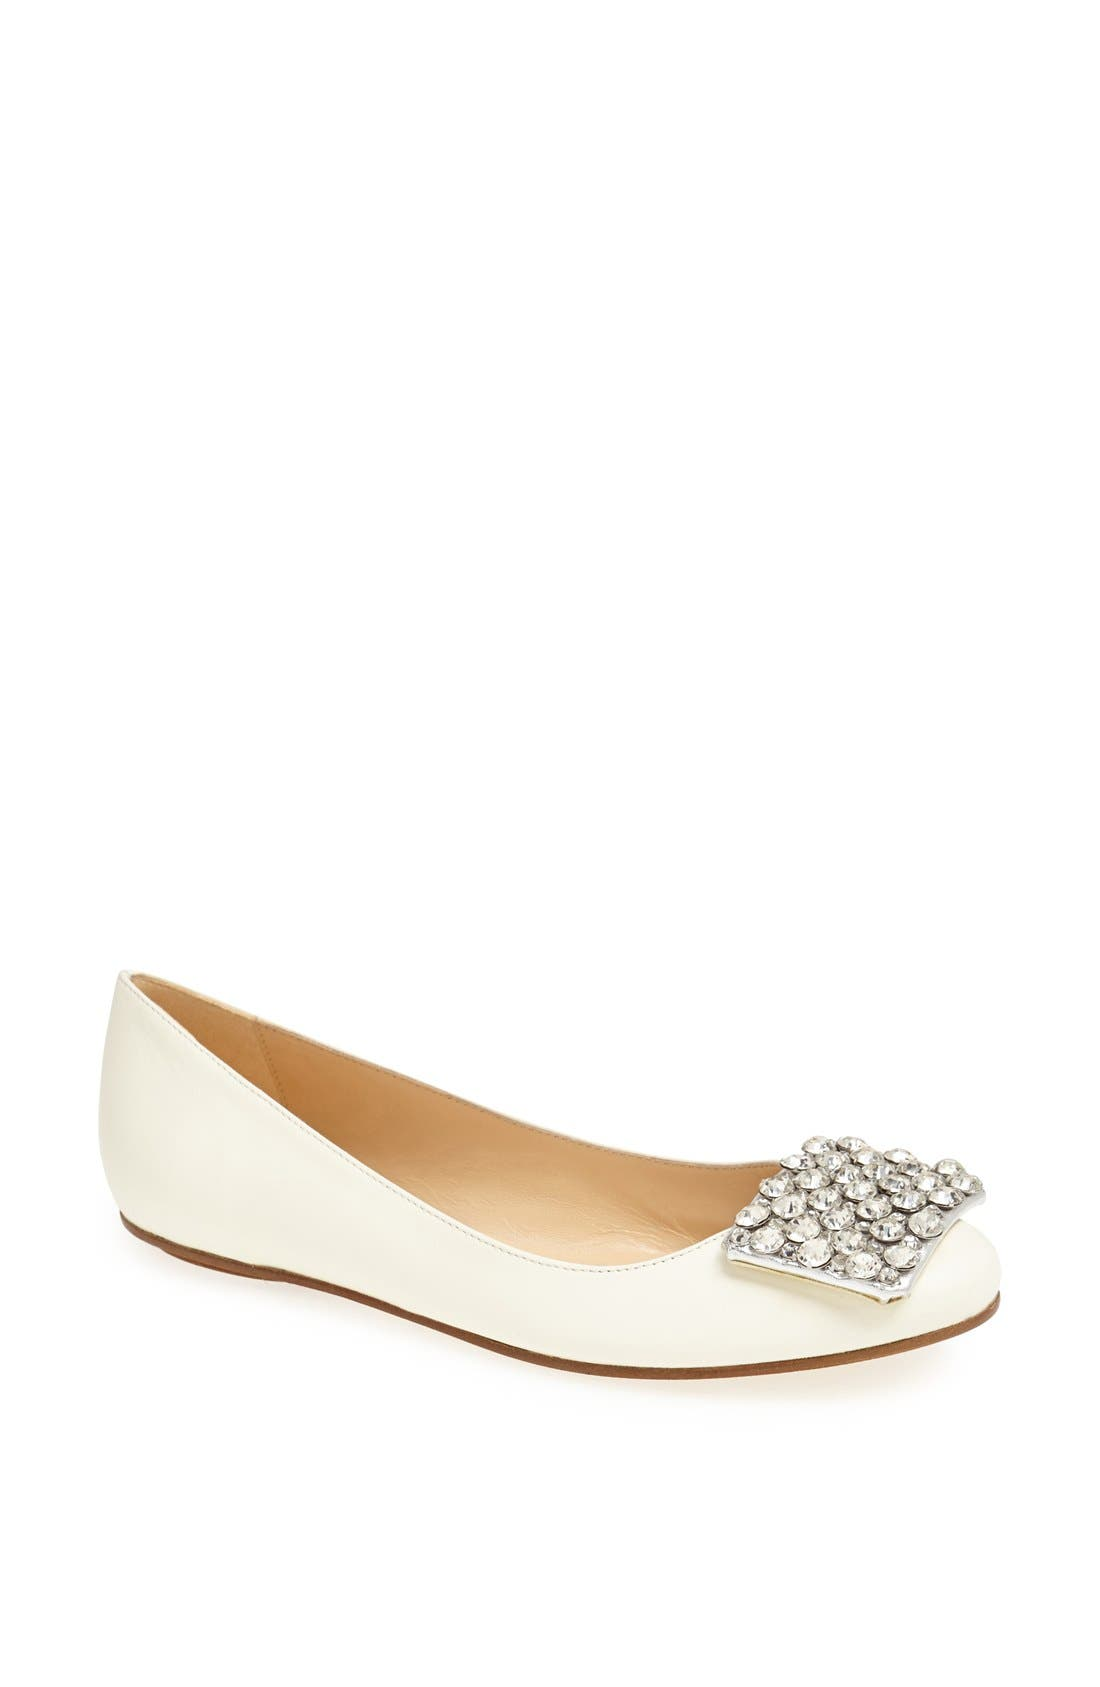 Alternate Image 1 Selected - kate spade new york 'brilliant' nappa leather flat